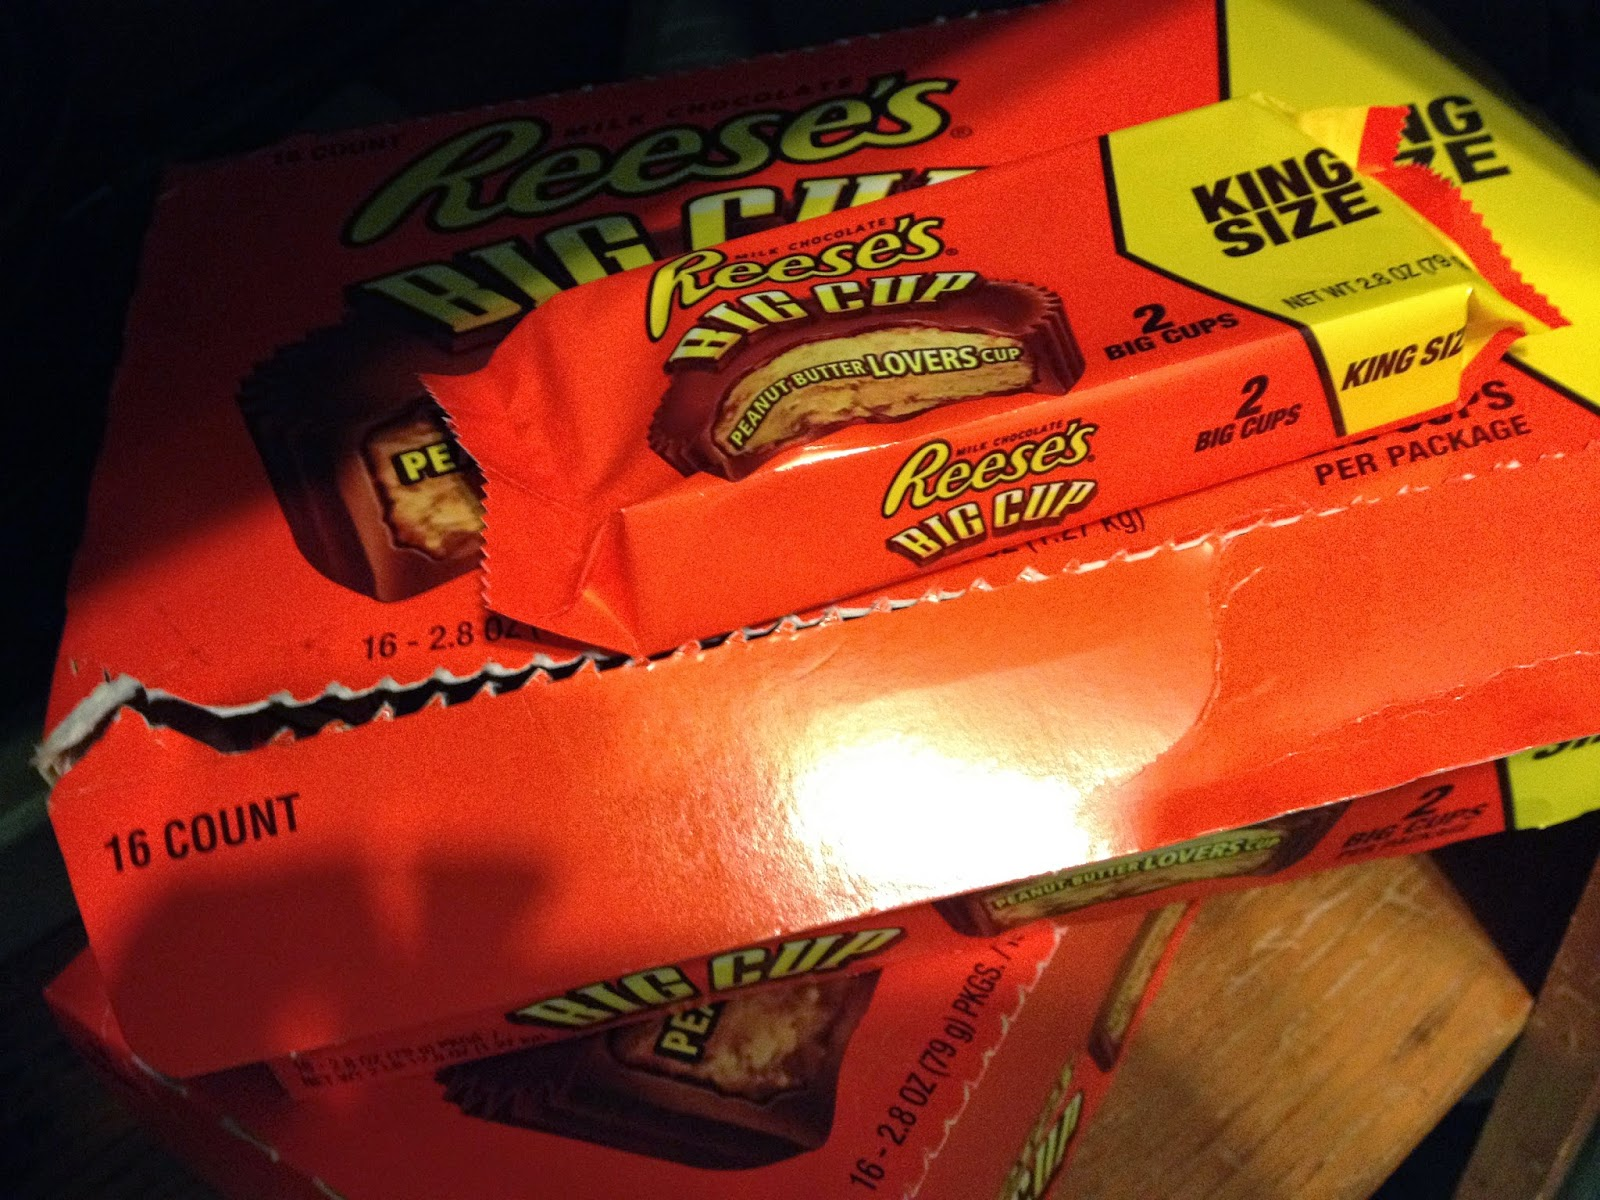 Reese's Big Cups King Size